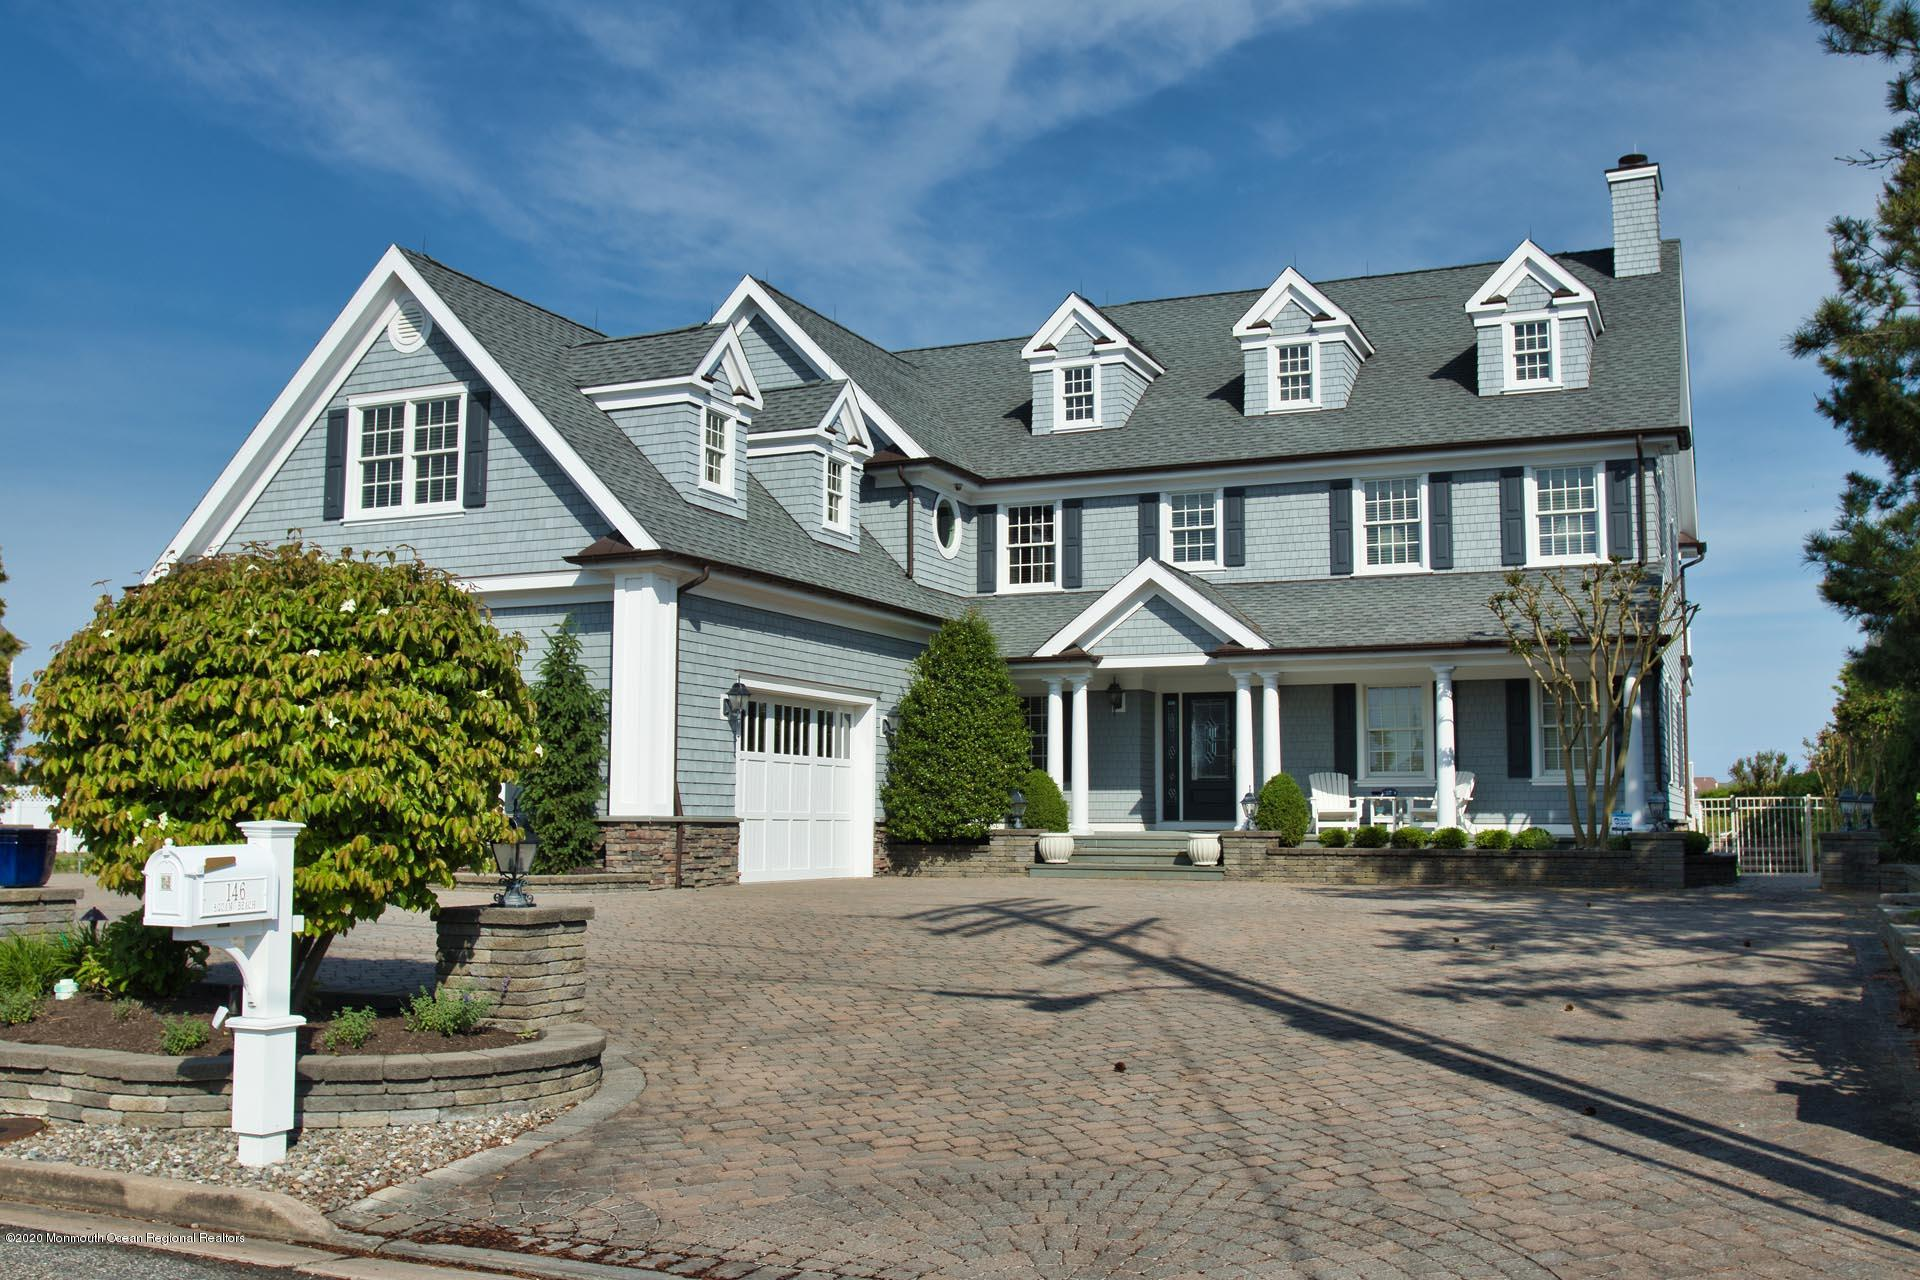 Photo of 146 Squan Beach Drive, Mantoloking, NJ 08738